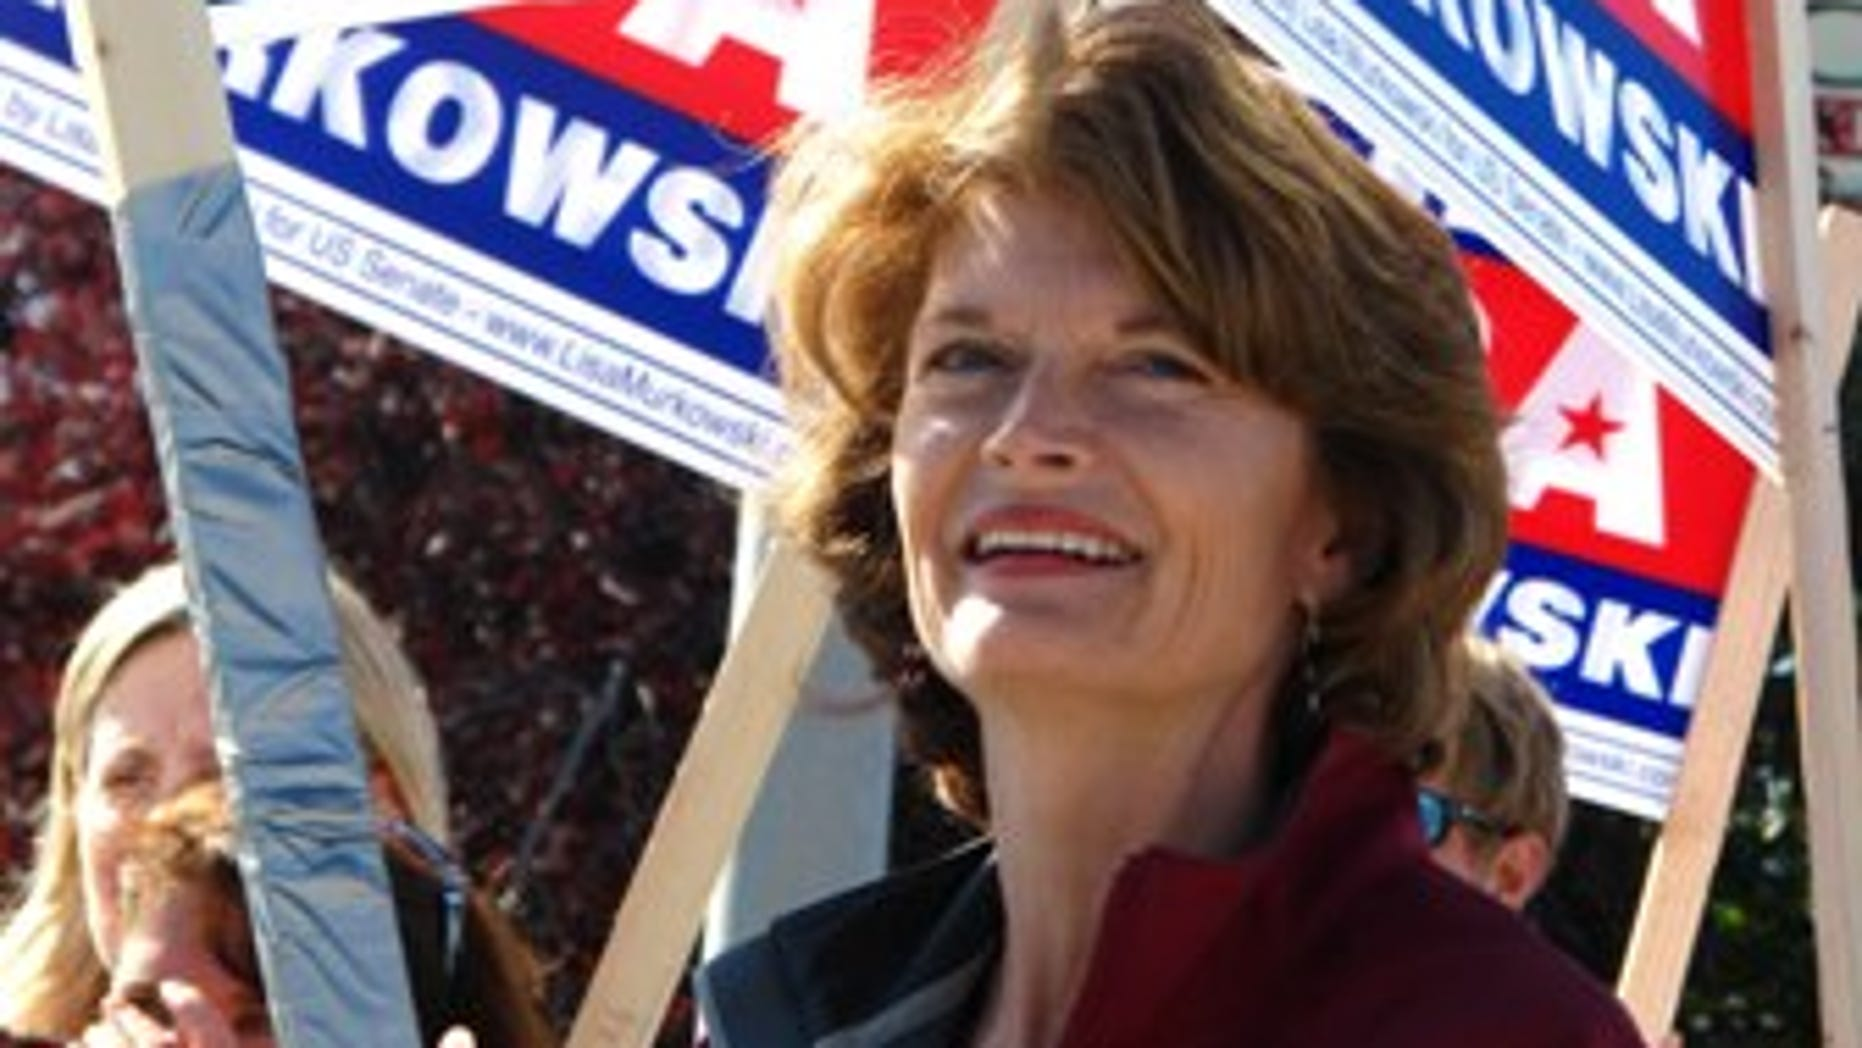 """U.S. Sen. Lisa Murkowski, R-Alaska, right, joins volunteers to wave to motorists on Monday, Aug. 23, 2010, in Anchorage, Alaska.  Candidates are pulling no punches in their last minute push for voters in Tuesday's primary. The greatest proof of this is in the U.S. Senate race where Sarah Palin has re emerged months after first endorsing GOP challenger Joe Miller to urge Alaskans to support him and to oust Murkowski. Murkowski's not shying away, running a new radio spot of her own, called """"Truth,"""" in which she uses audio from a talk show host's tirade against Miller to show Miller as distorting her record. (AP Photo/Mark Thiessen)"""